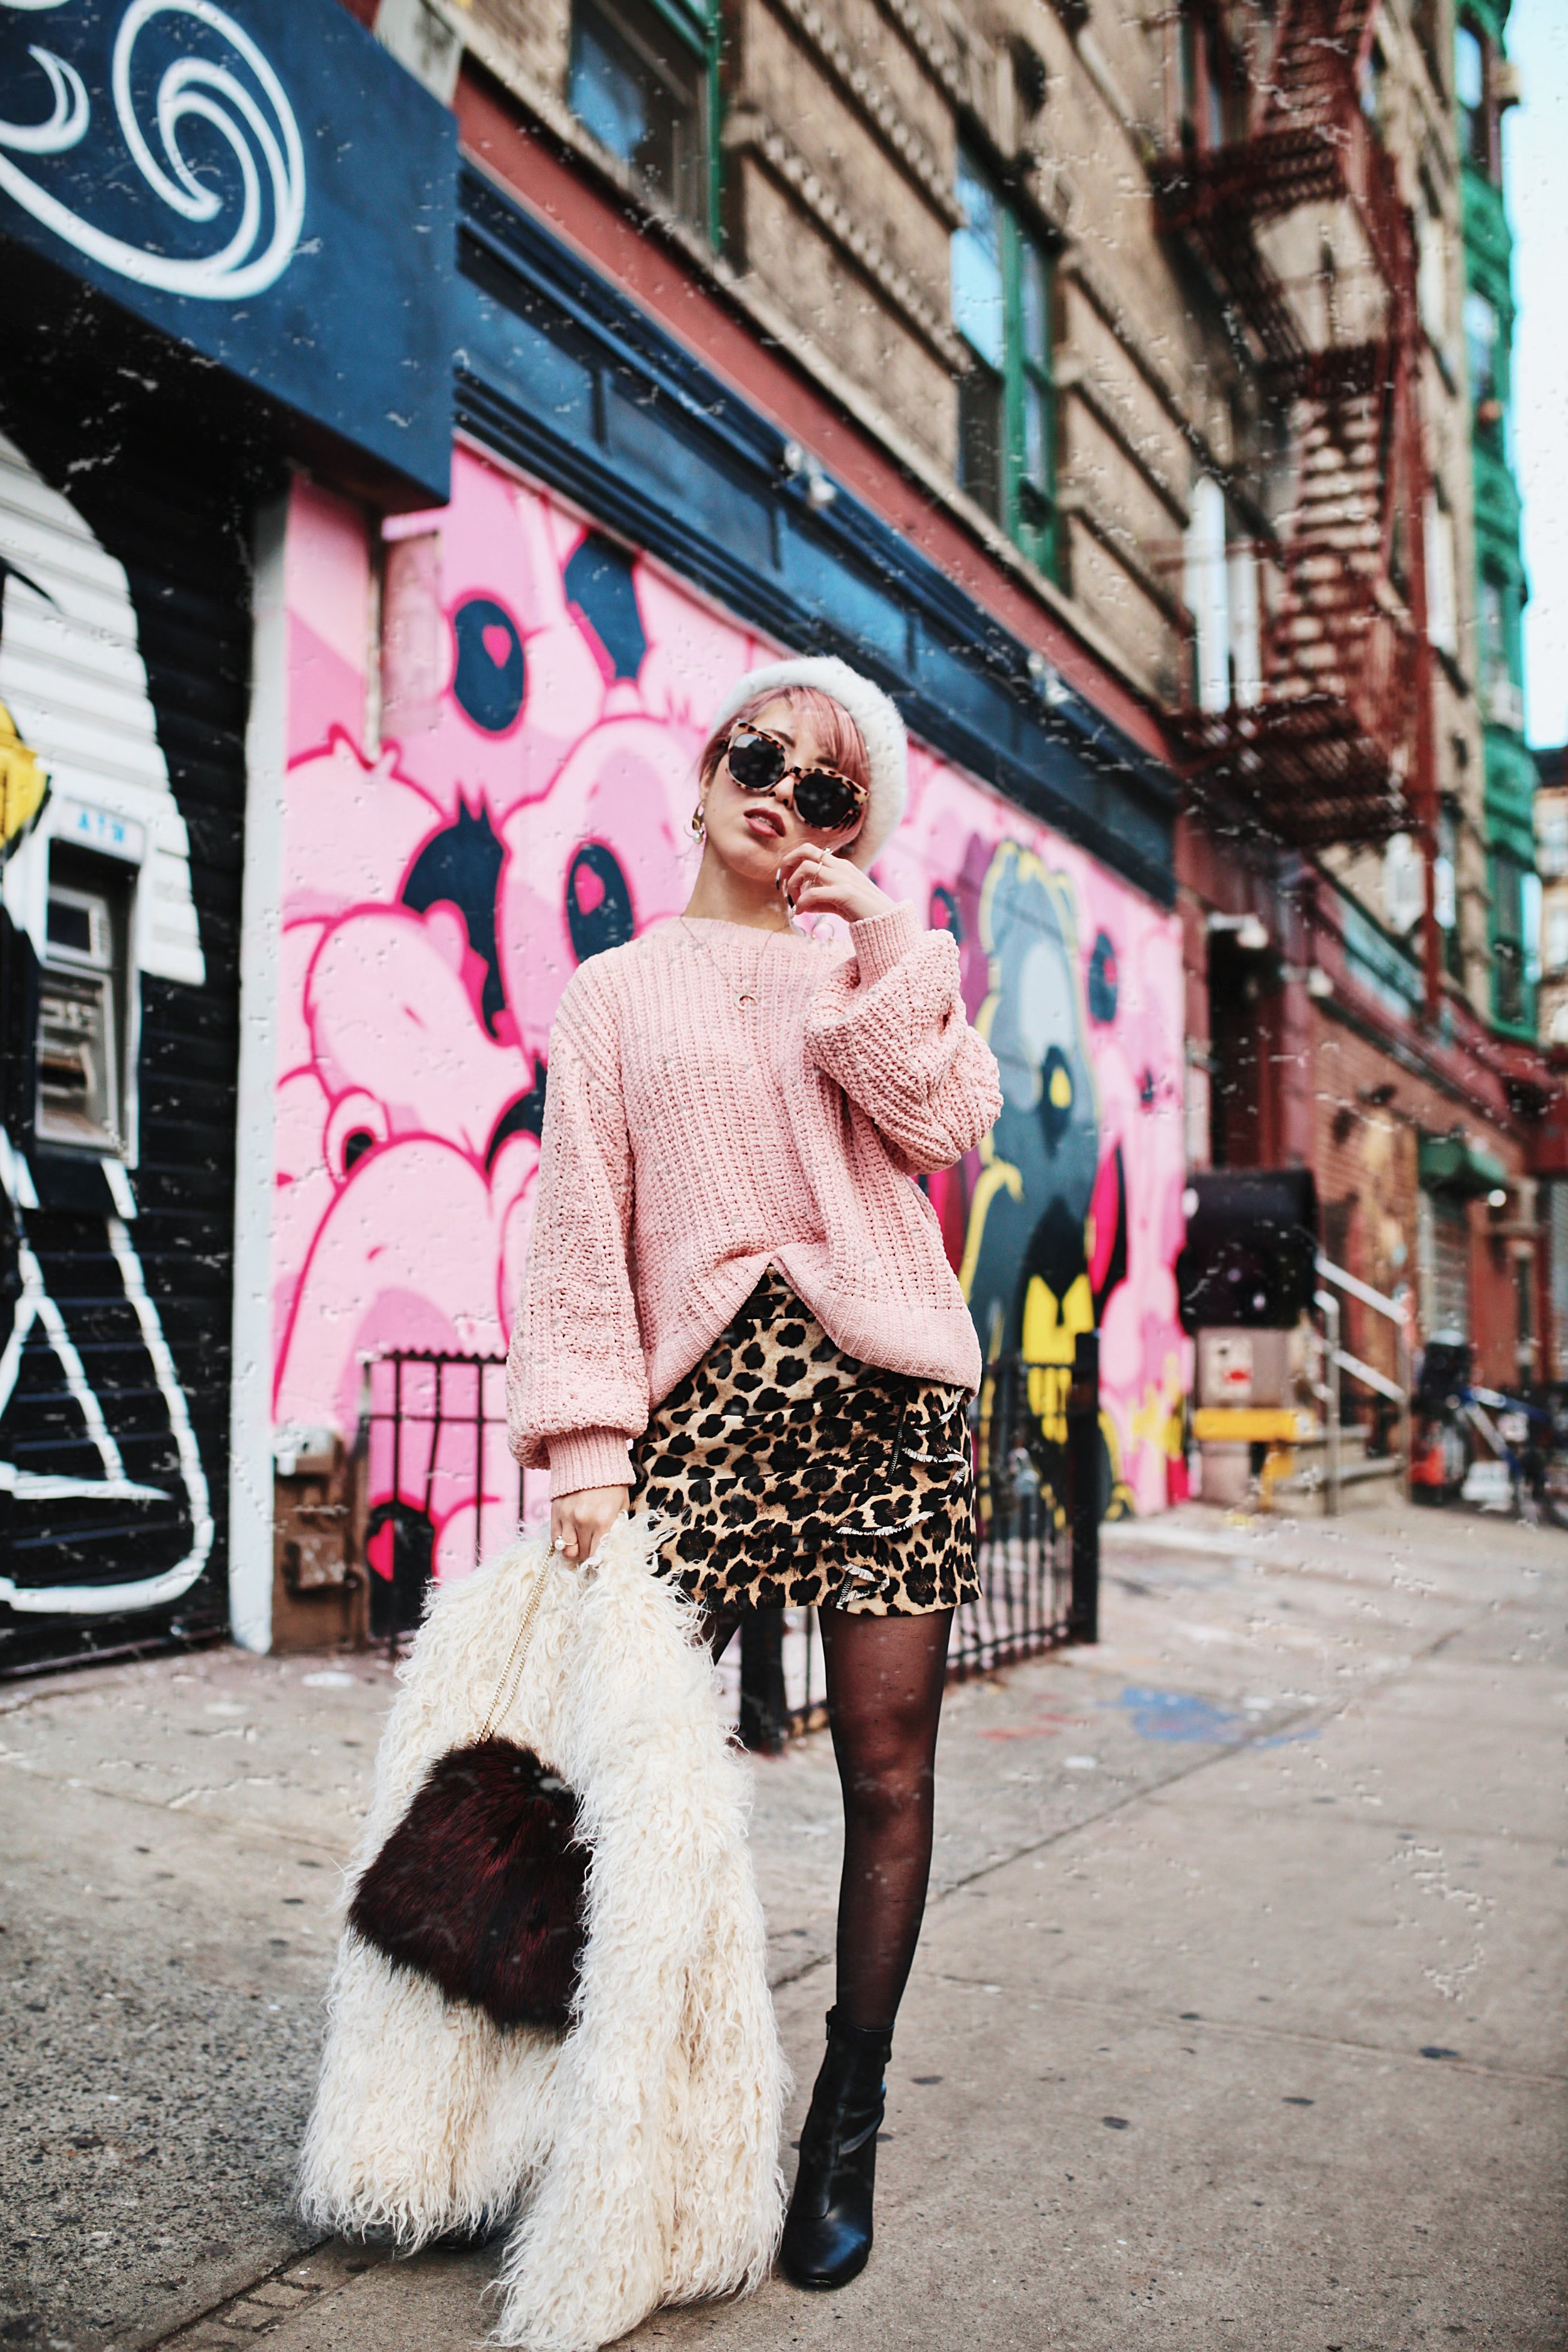 H&M Pink Sweater-Zara leopar prins mini skirt-H&M white shaggy coat-DVF fur bag-anthropologie white beret-Urban Outfitters Sunglasses-ALDO Ankle Boots-Mango Earrings-Aikas Love Closet-New York City-Pink Hair-Style Fashion Blogger-Seattle-Japanese_Petite fashion blogger 23